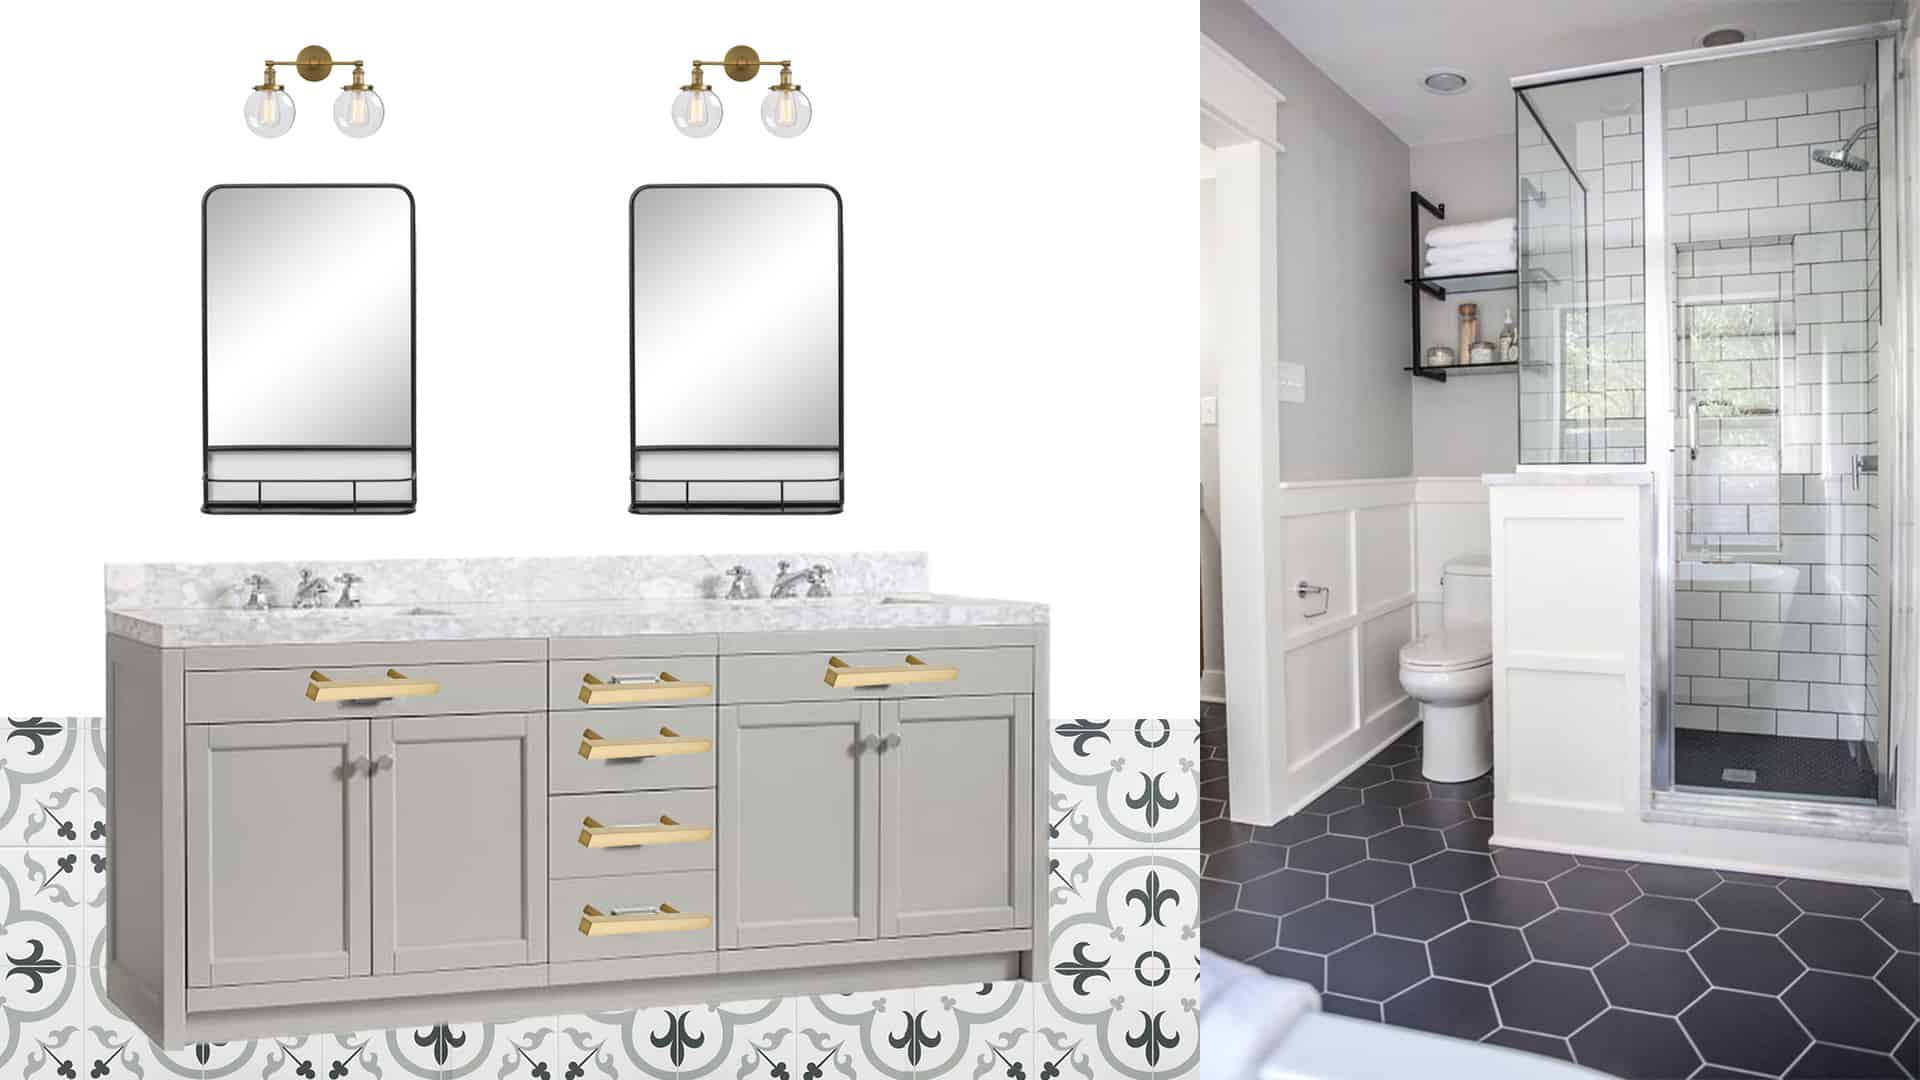 DIY Master Bathroom Renovation - One Room Challenge